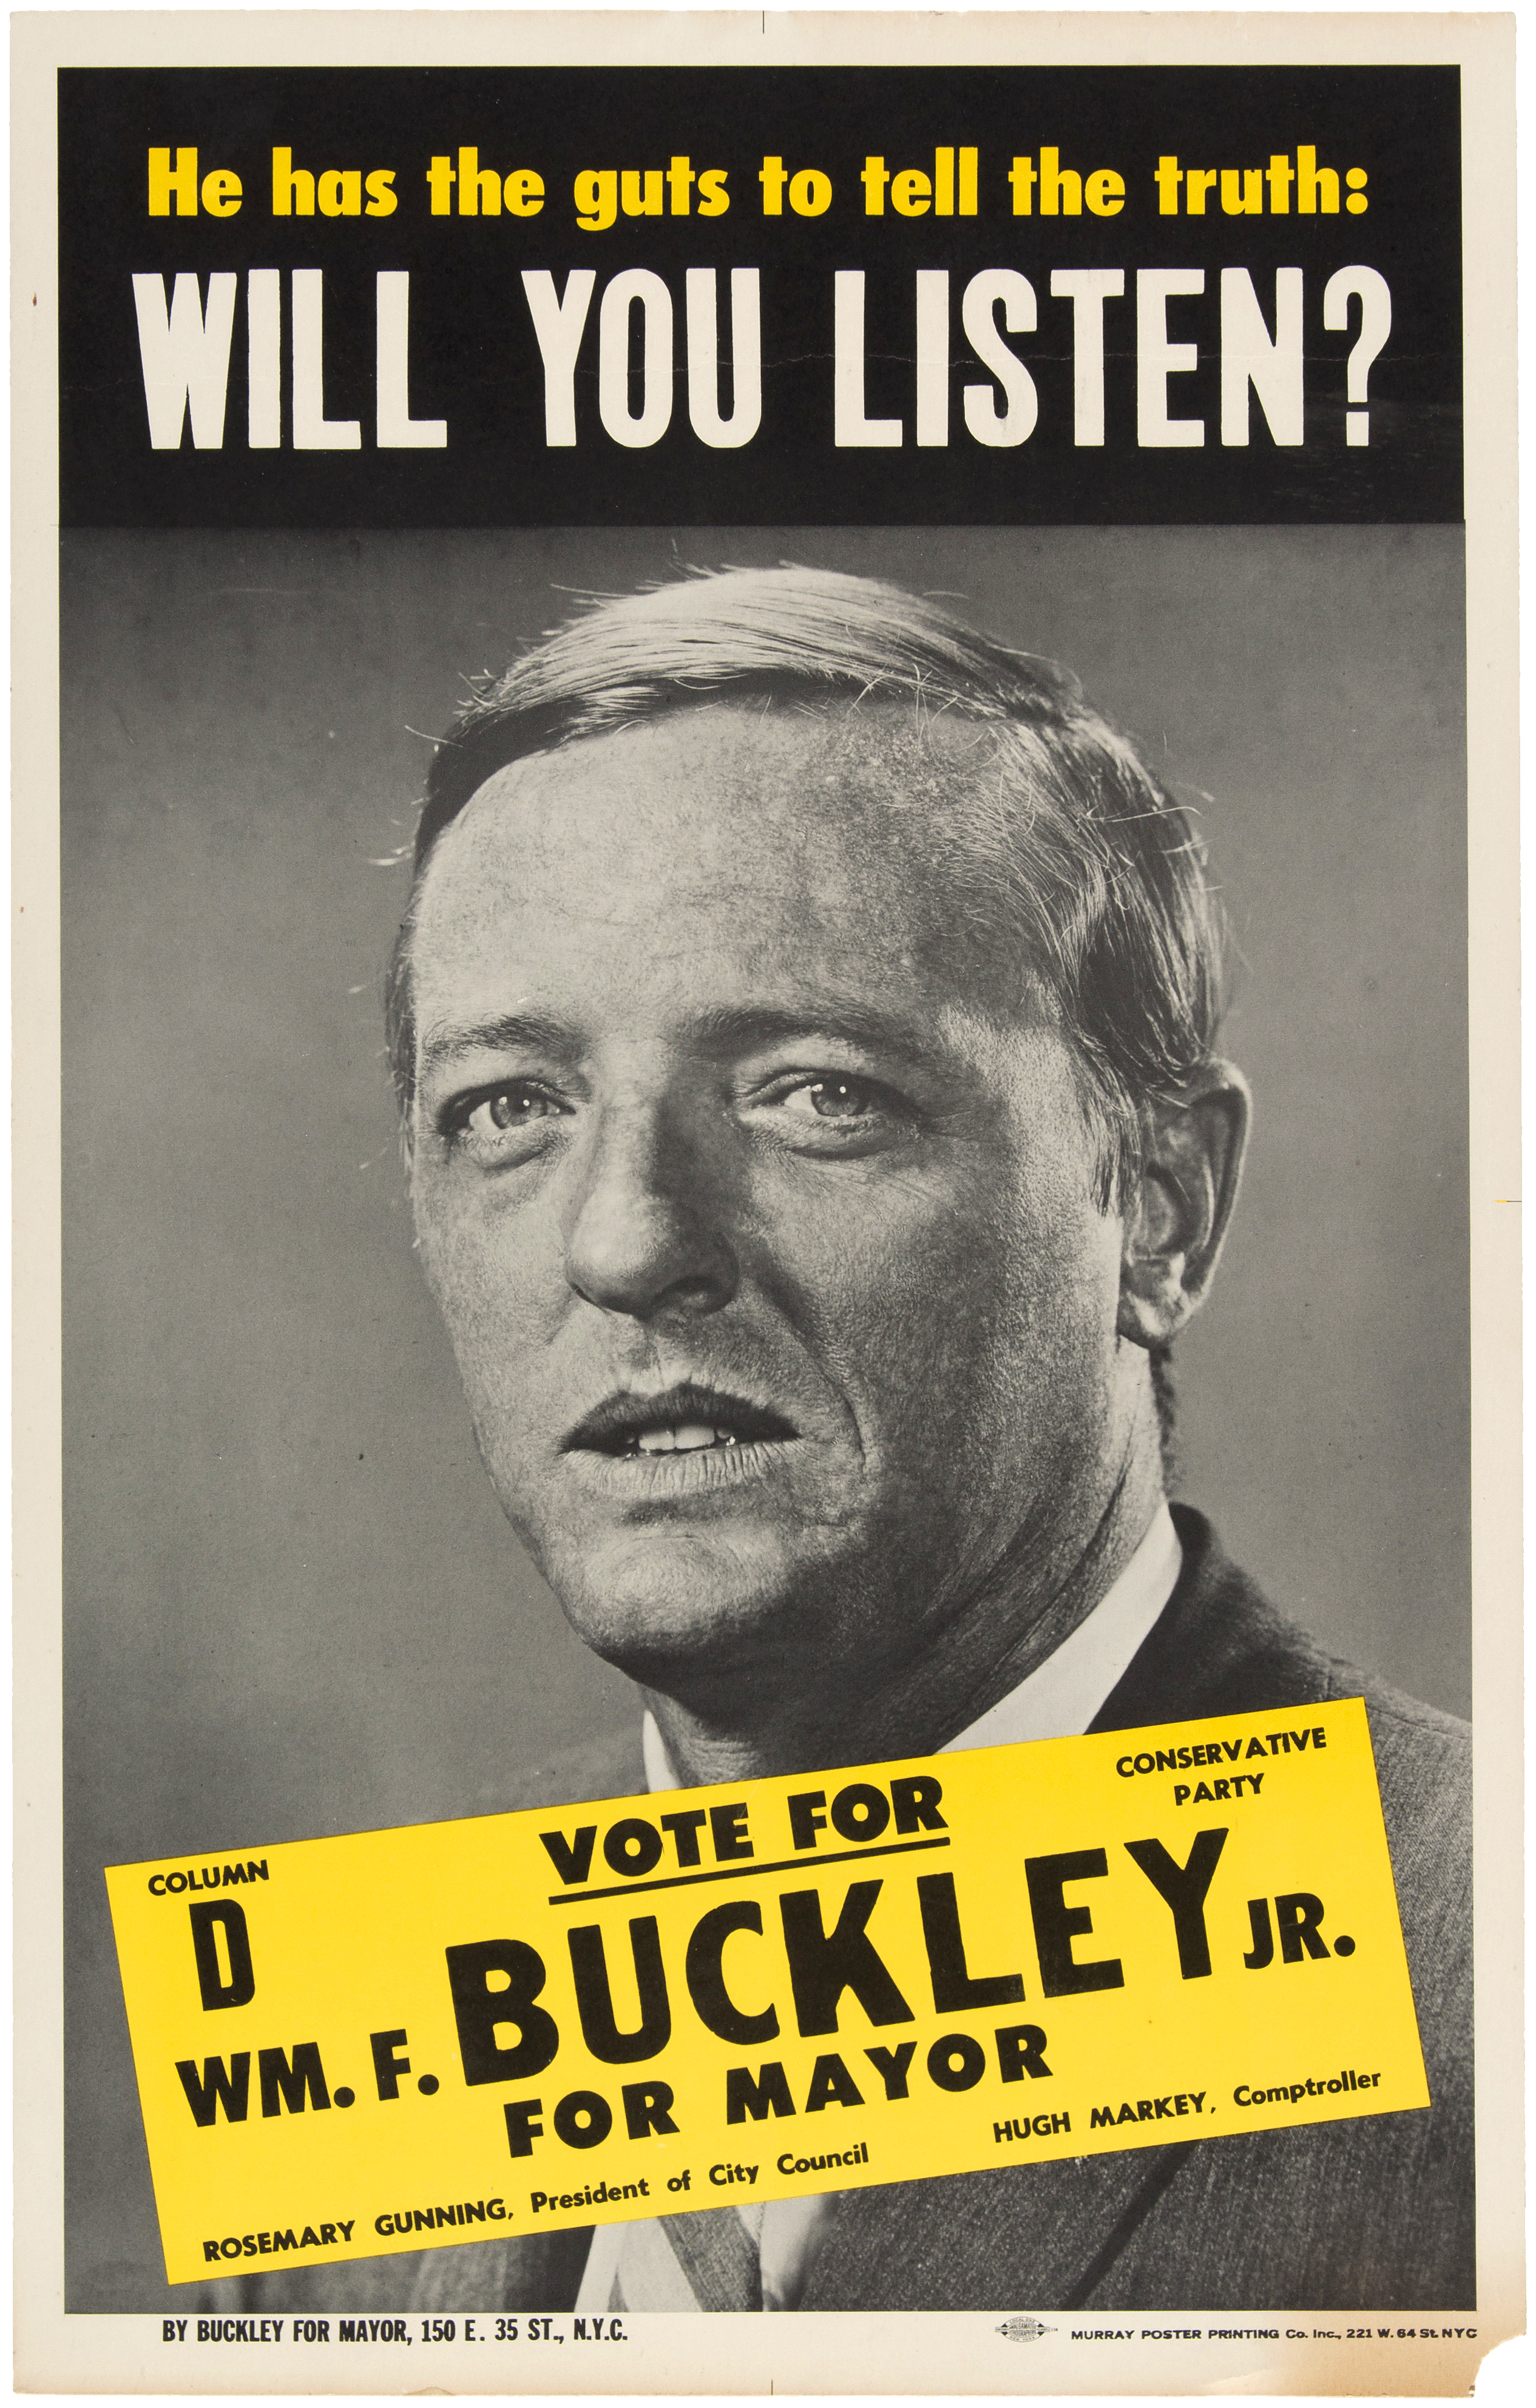 Buckley for Mayor campaign poster.